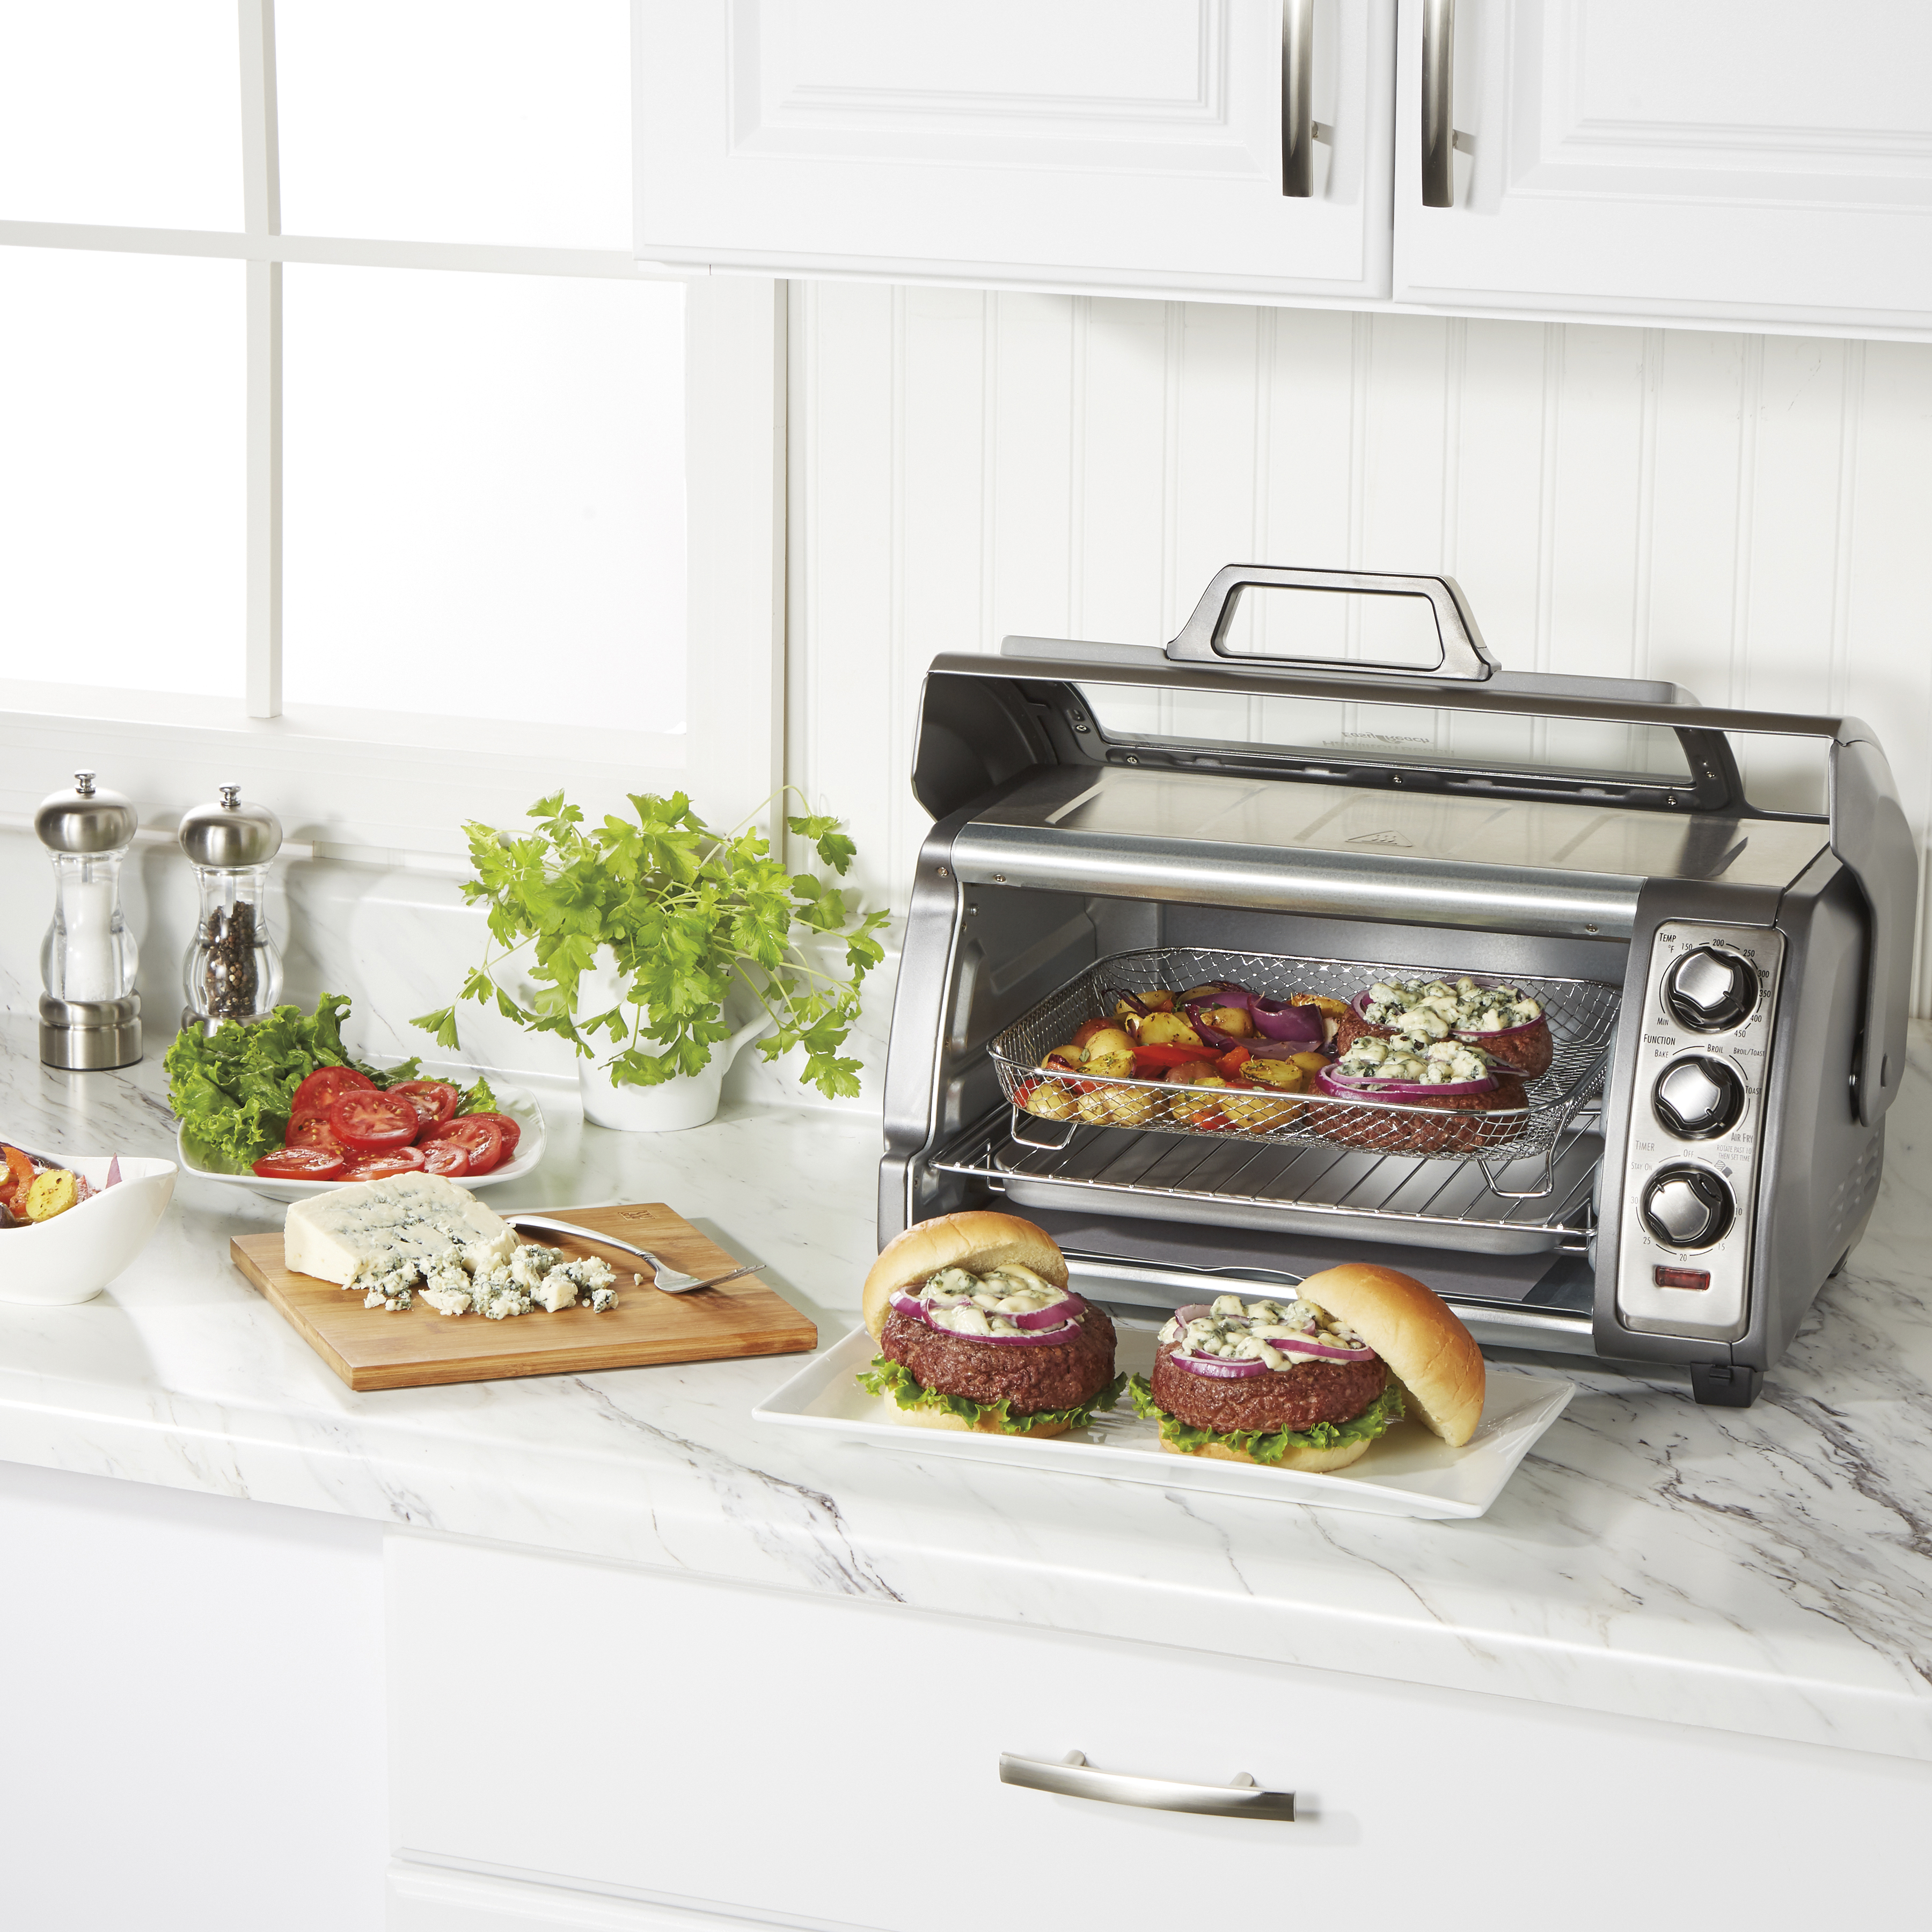 Enter for a Chance to Win a Hamilton Beach® Easy Reach® Sure-Crisp® Air Fryer Toaster Oven